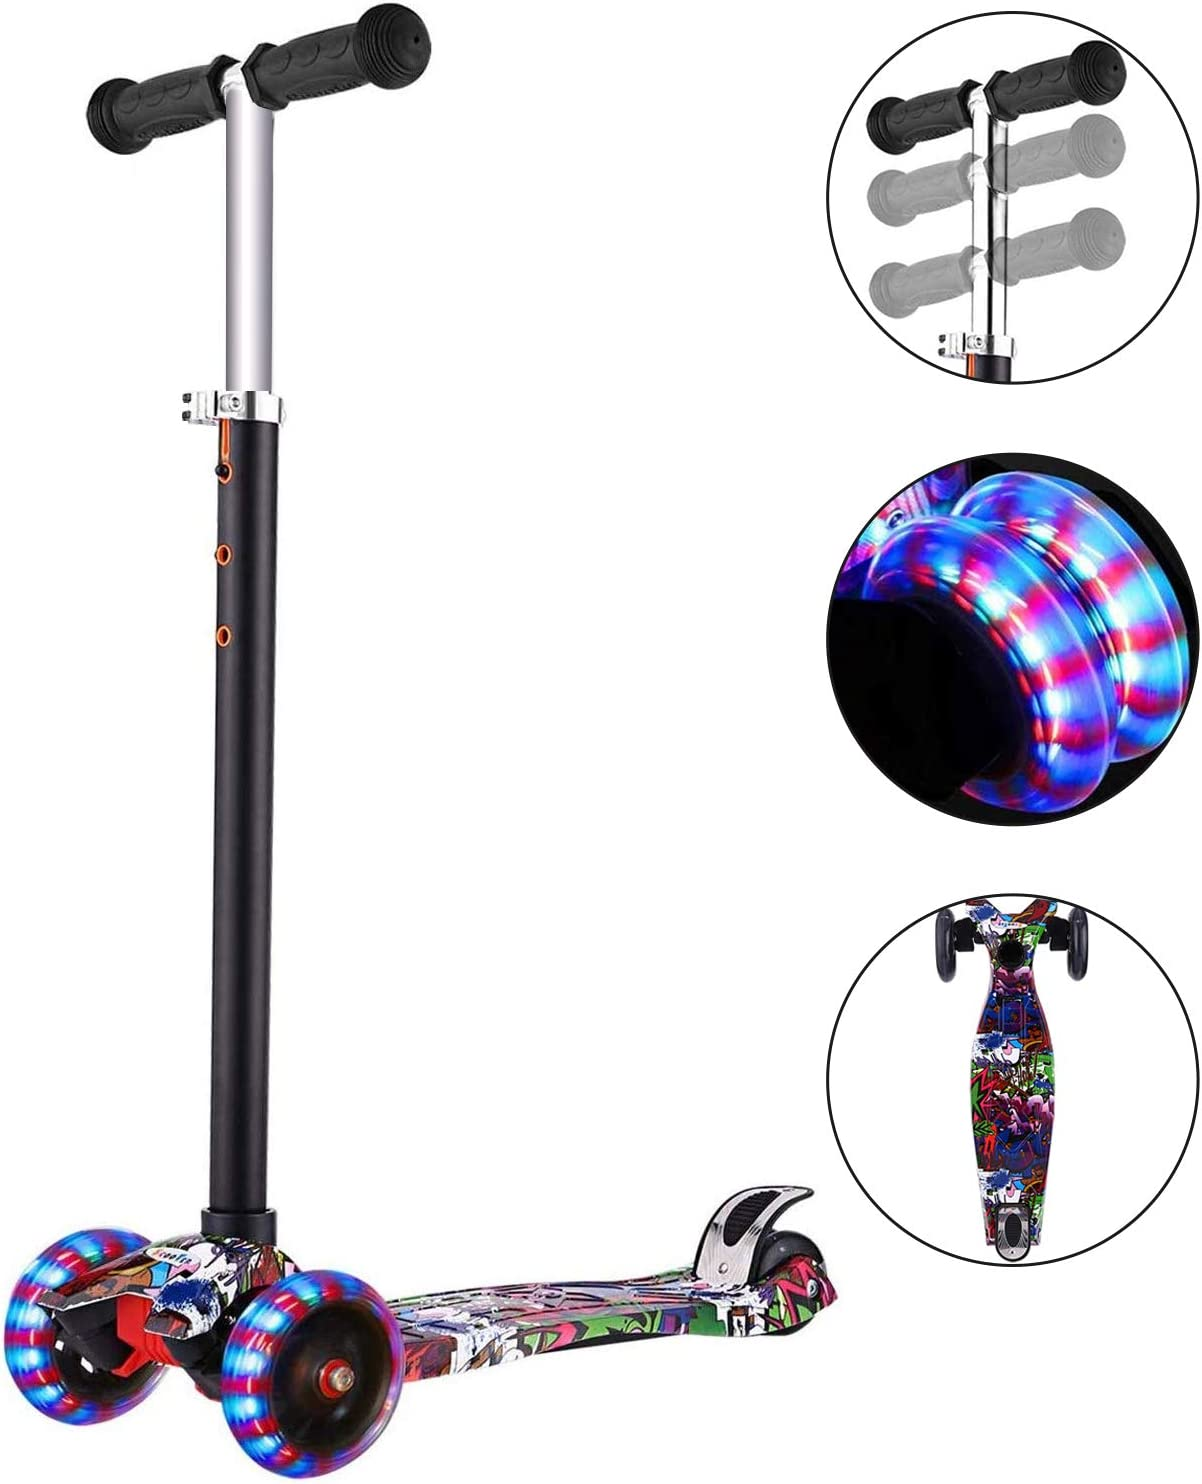 WeSkate Scooters for Kids 3 Wheel Kick Scooter with Adjustable Height Light Up Flashing Wheel for Boys Girls, 3-12 Quick Disassembly with One Button